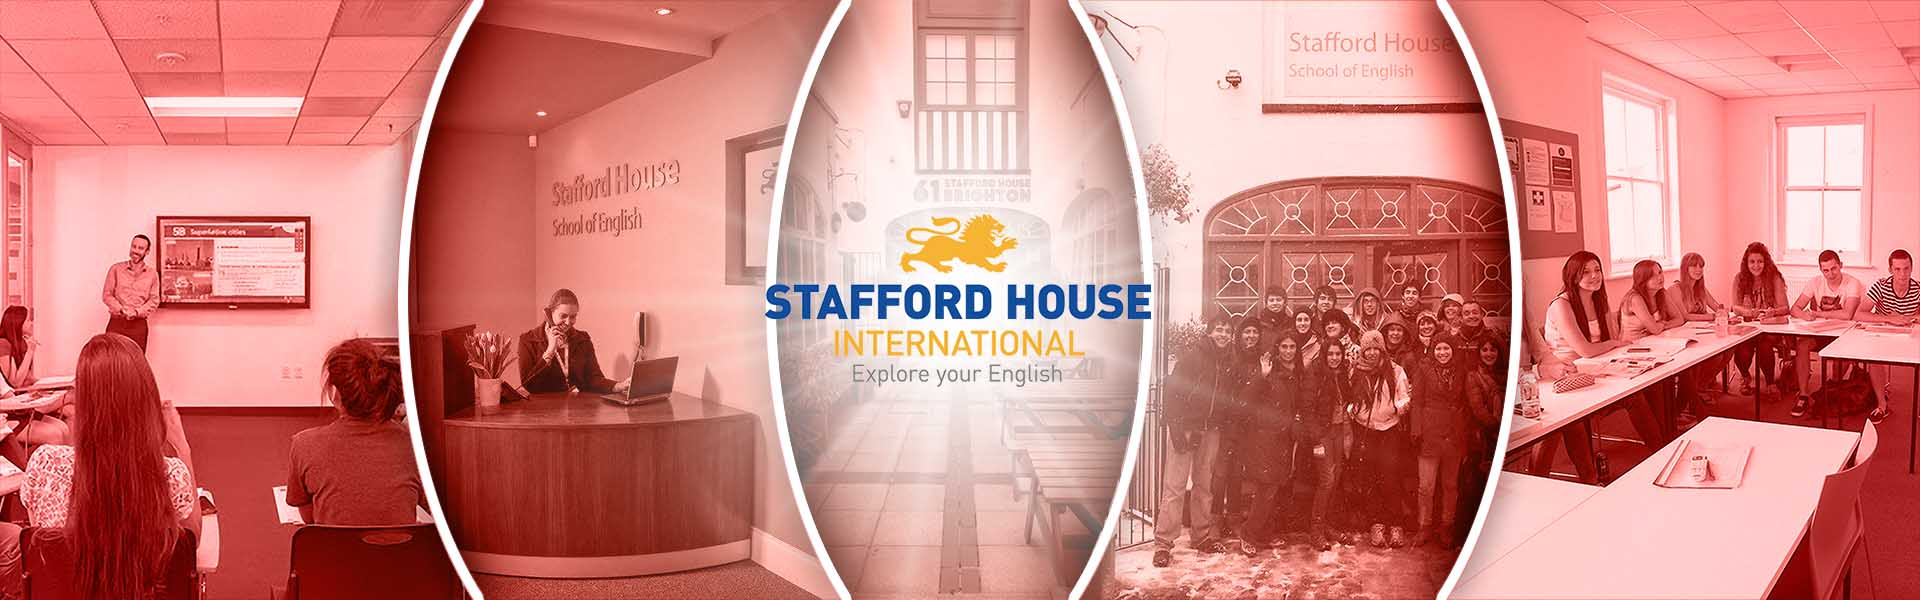 Stafford House Brighton Dil Okulu